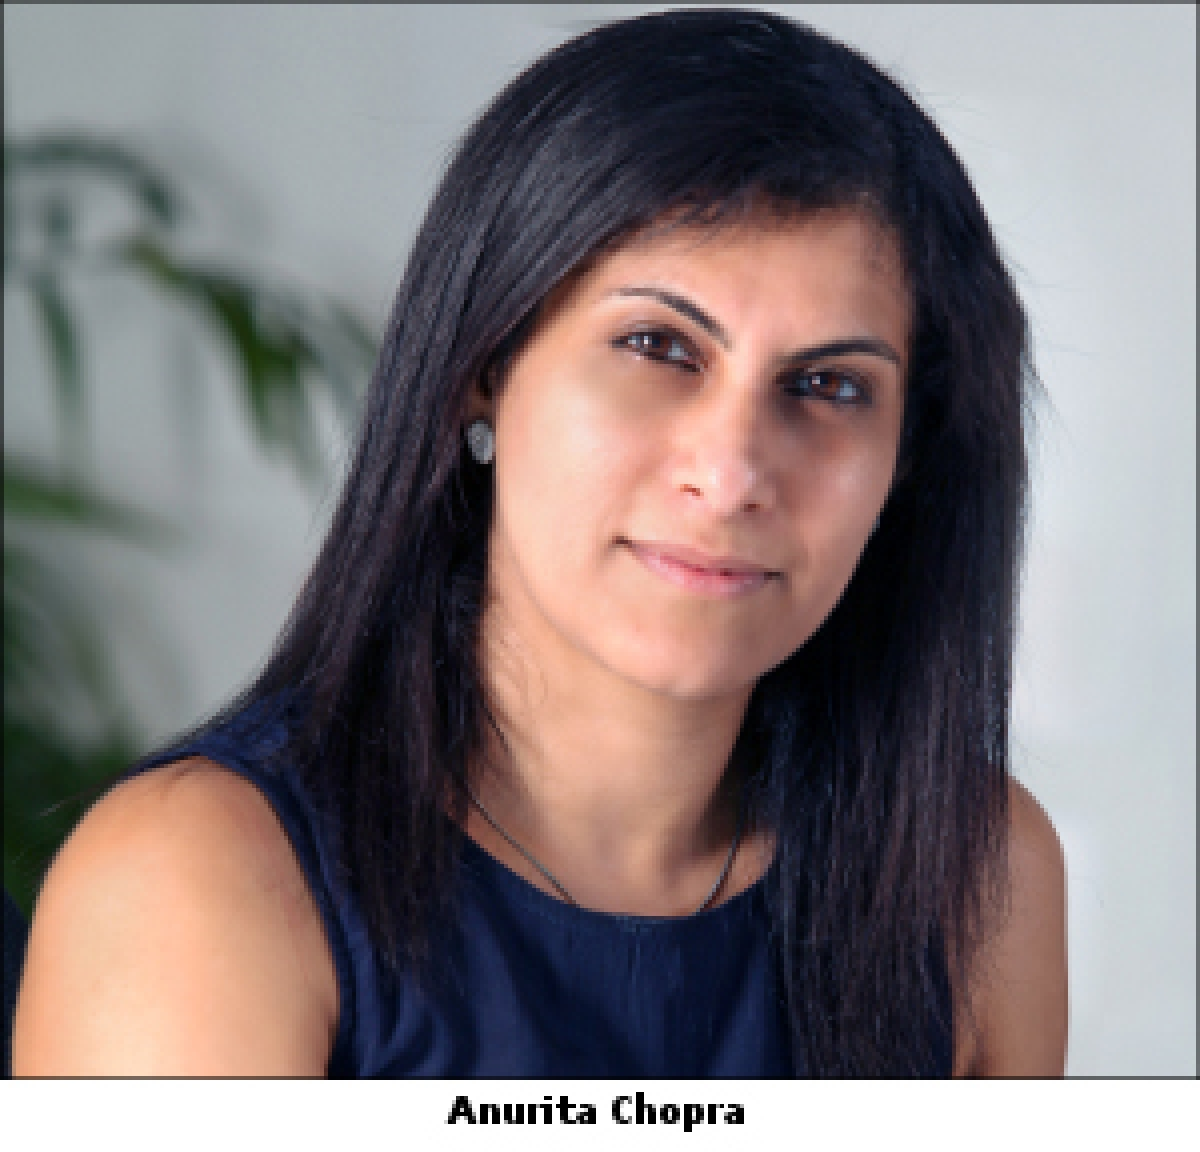 GSK Consumer Healthcare appoints Philips India's Anurita Chopra as area marketing lead, Oral Health